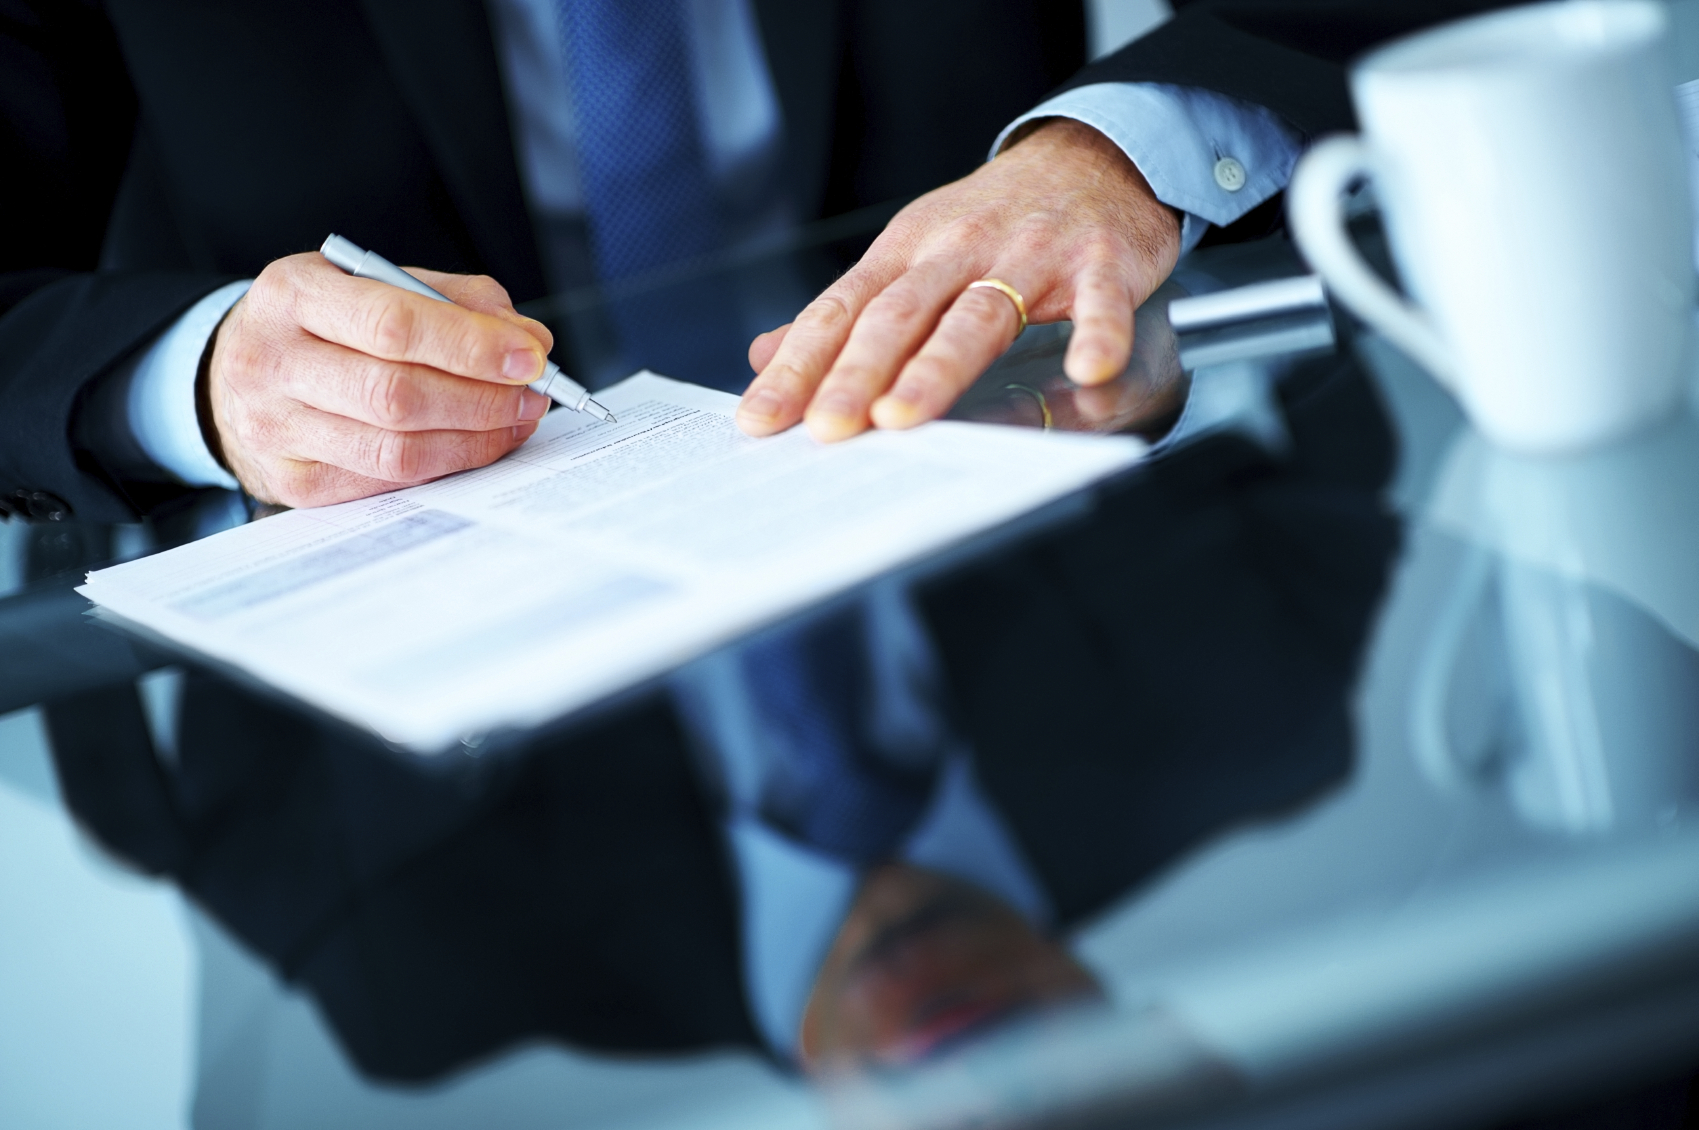 Cropped image of a businessman hands signing a contract or document at a desk